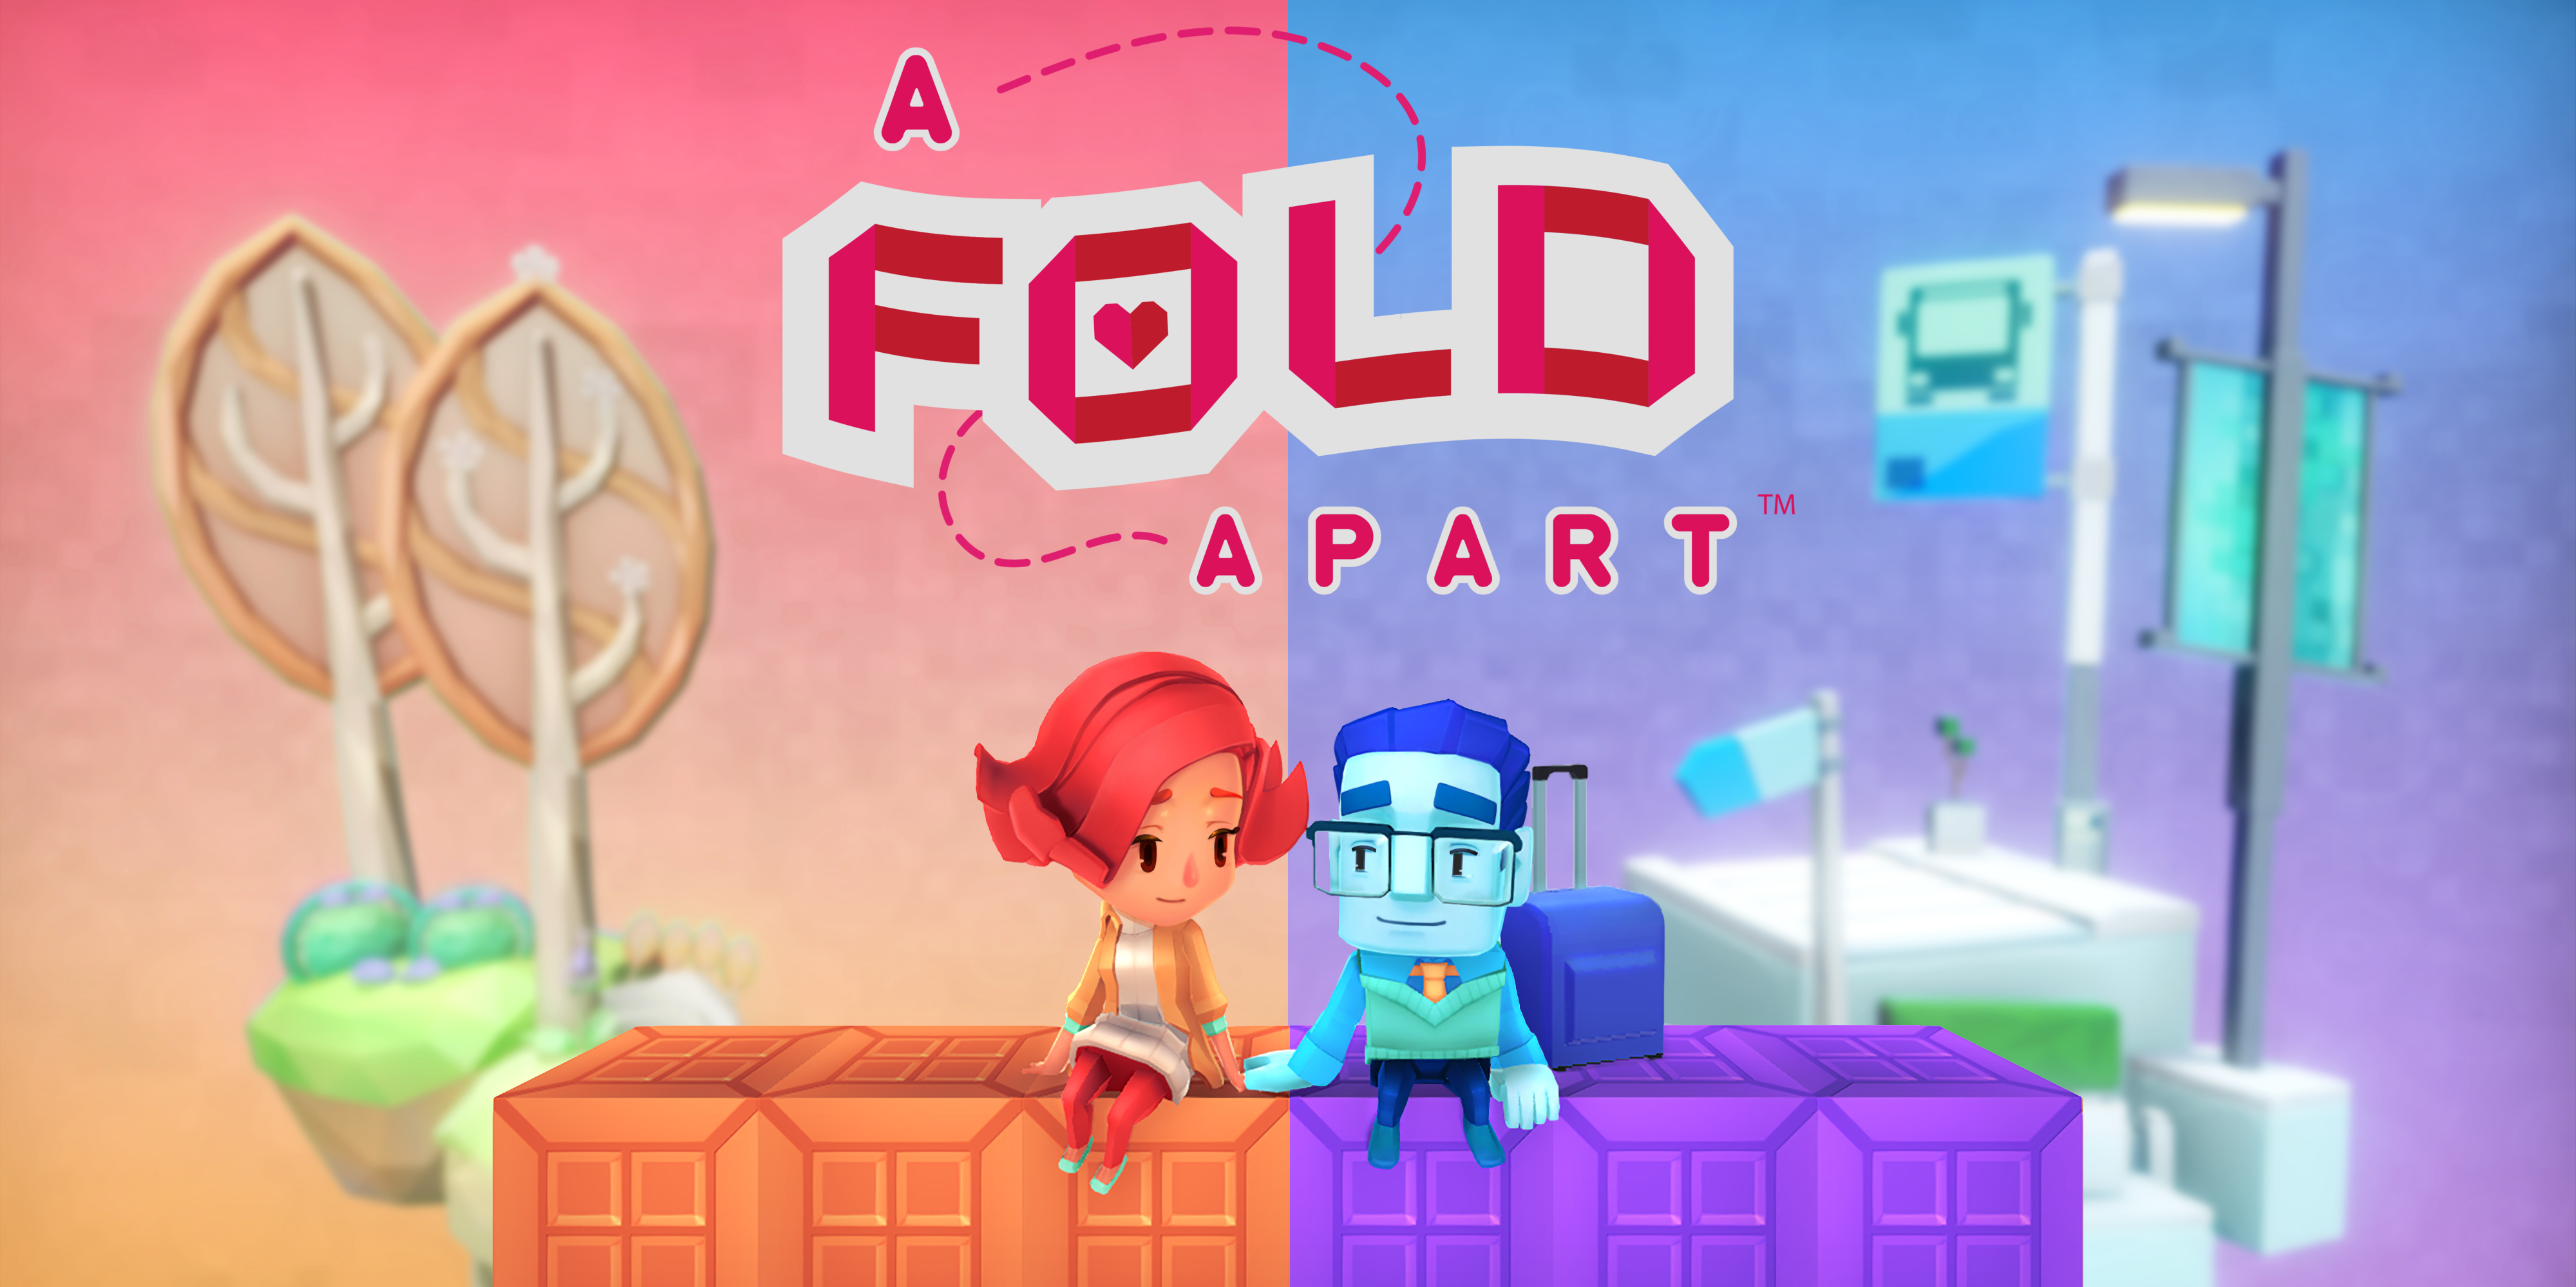 Everything you need to complete A Fold Apart - Apple Arcade cheats, tips